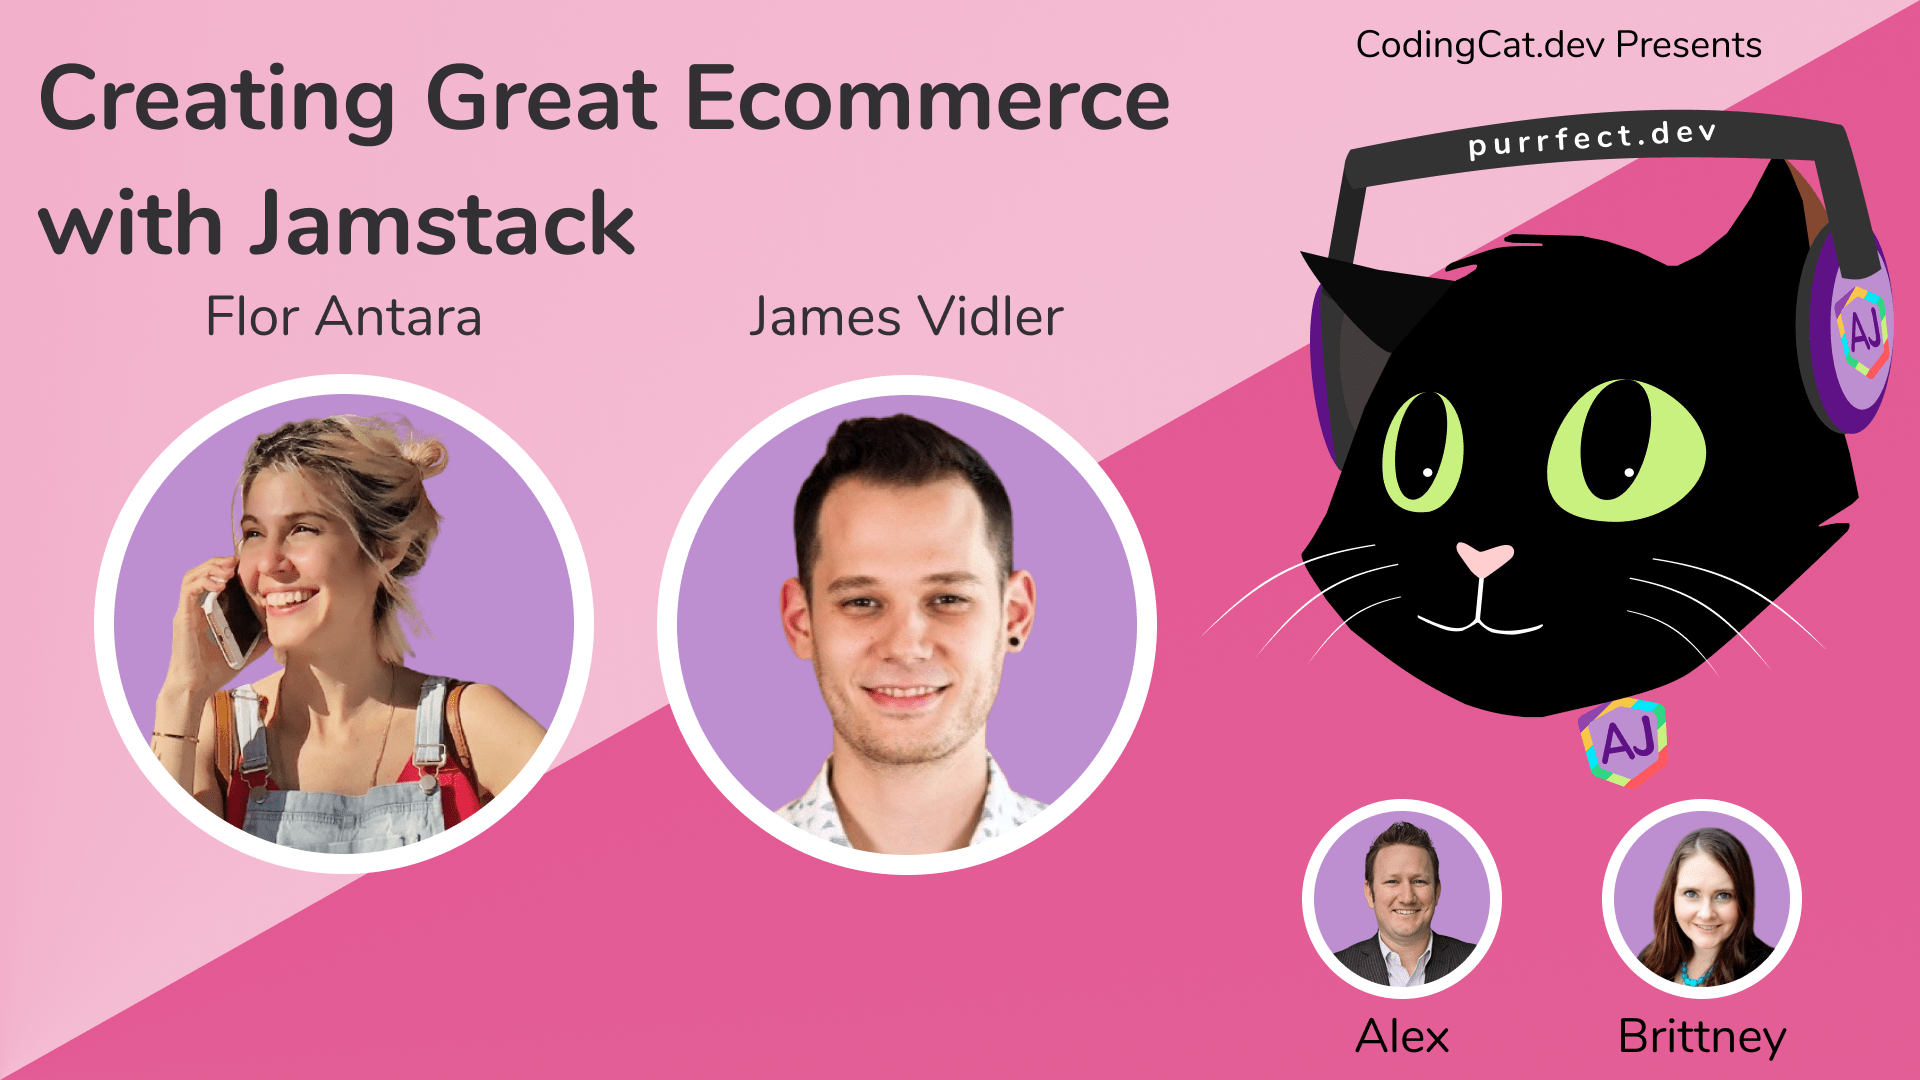 1.26 - Creating Great Ecommerce with Jamstack